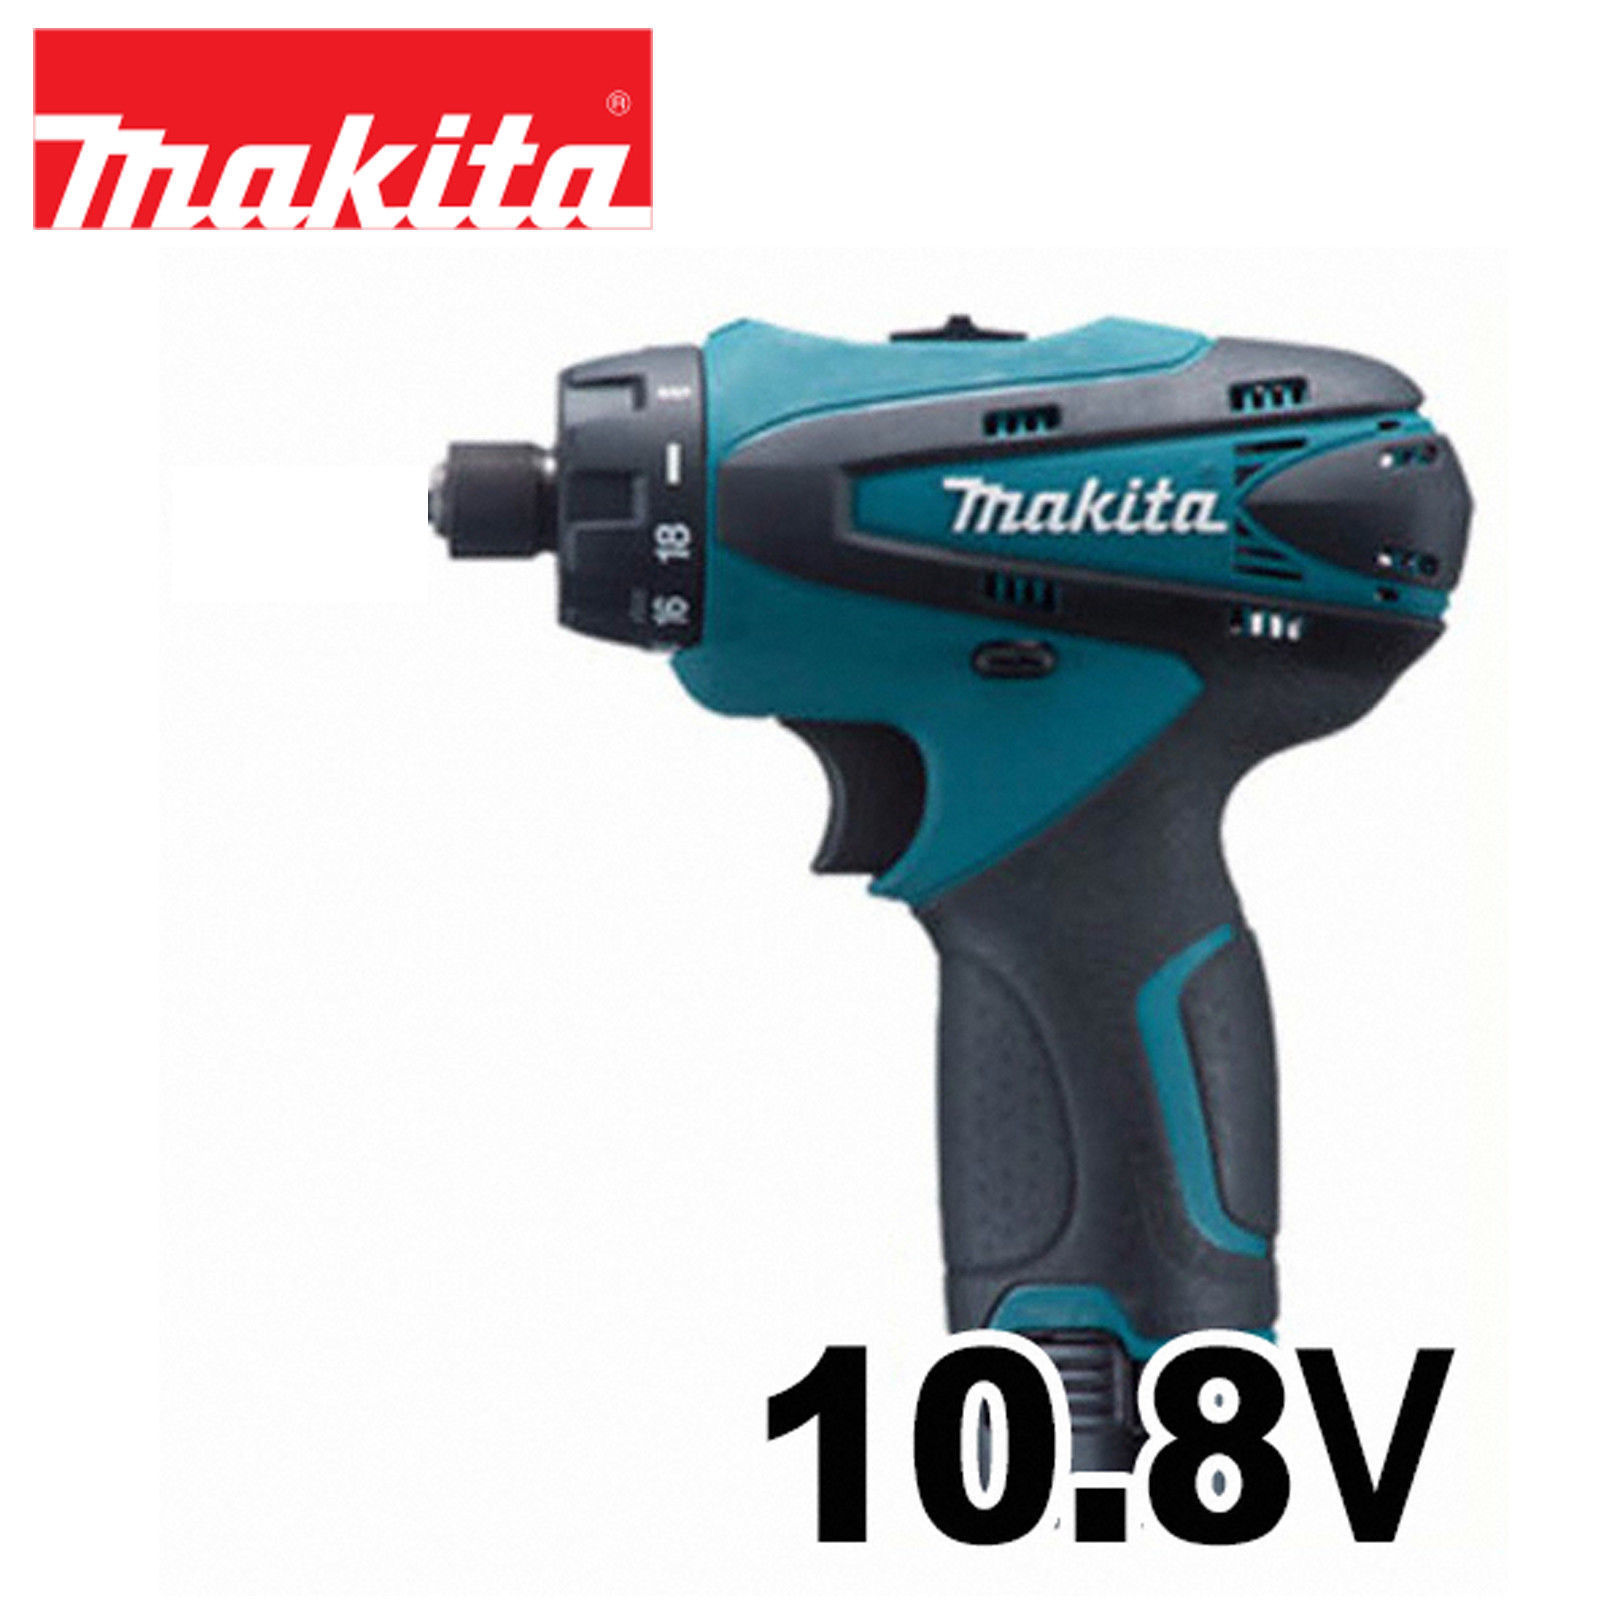 MAKITA DF030DZ – 10.8V 1/4'' LXT Cordless Drill Driver - Body only